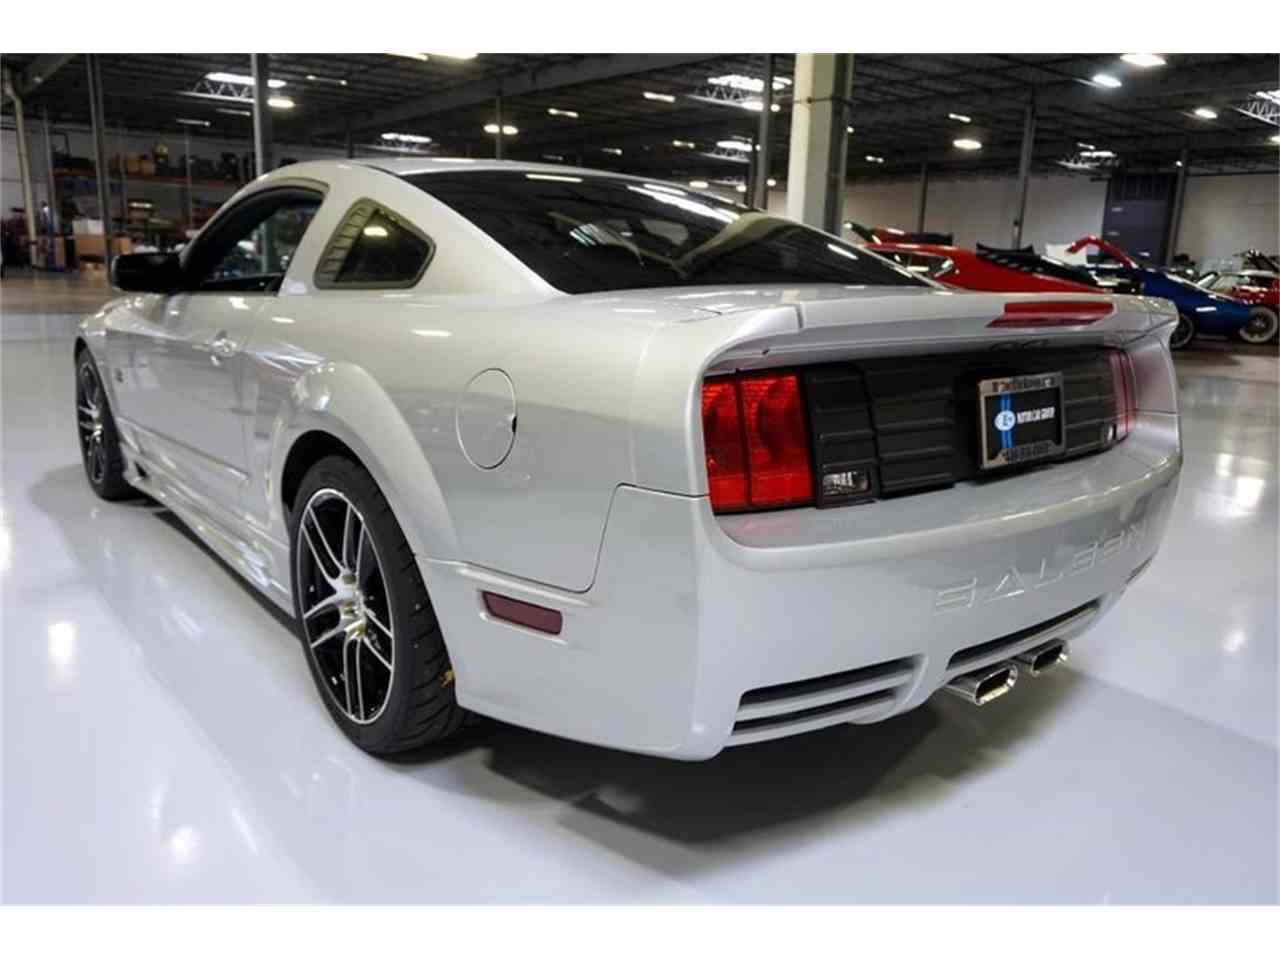 Large Picture of '06 Ford Mustang - $34,990.00 - MC5Z